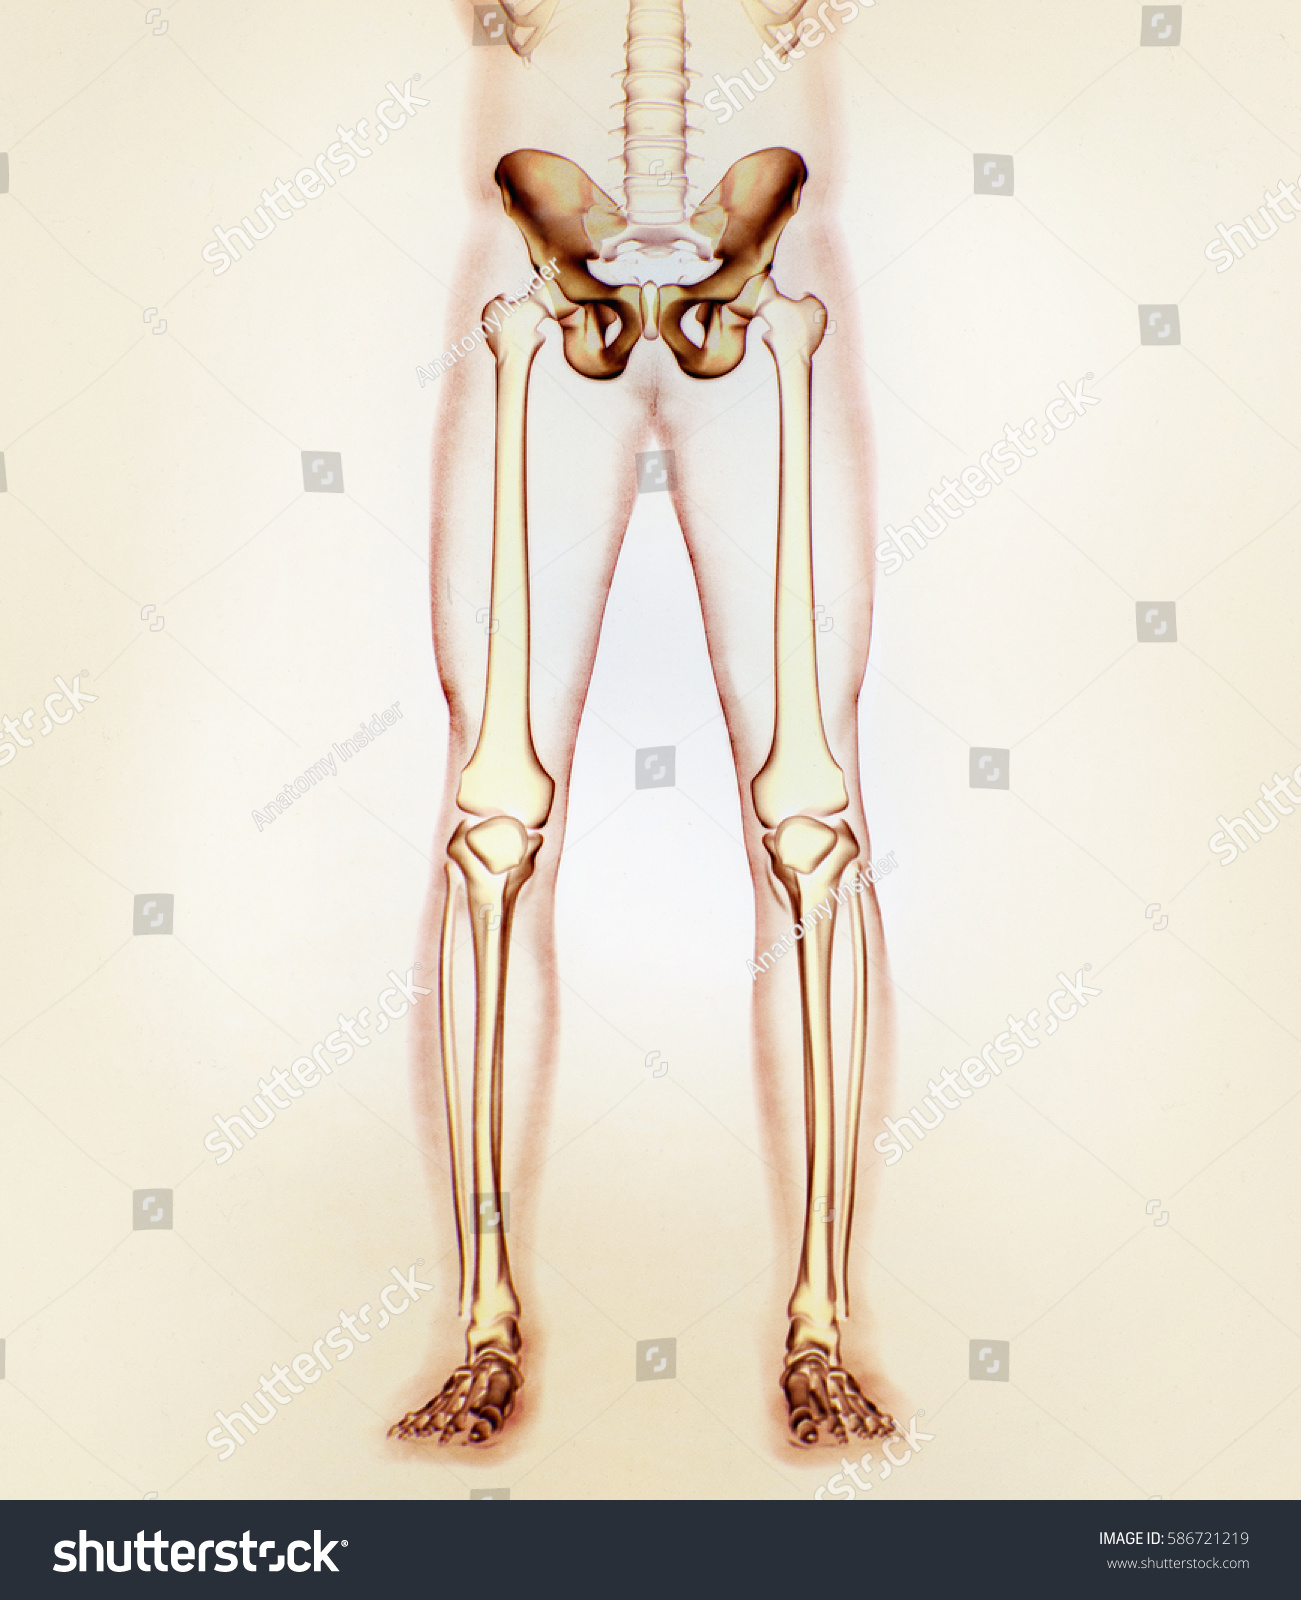 Ilium Bone Hip Bone Pelvis Human Stock Illustration 586721219